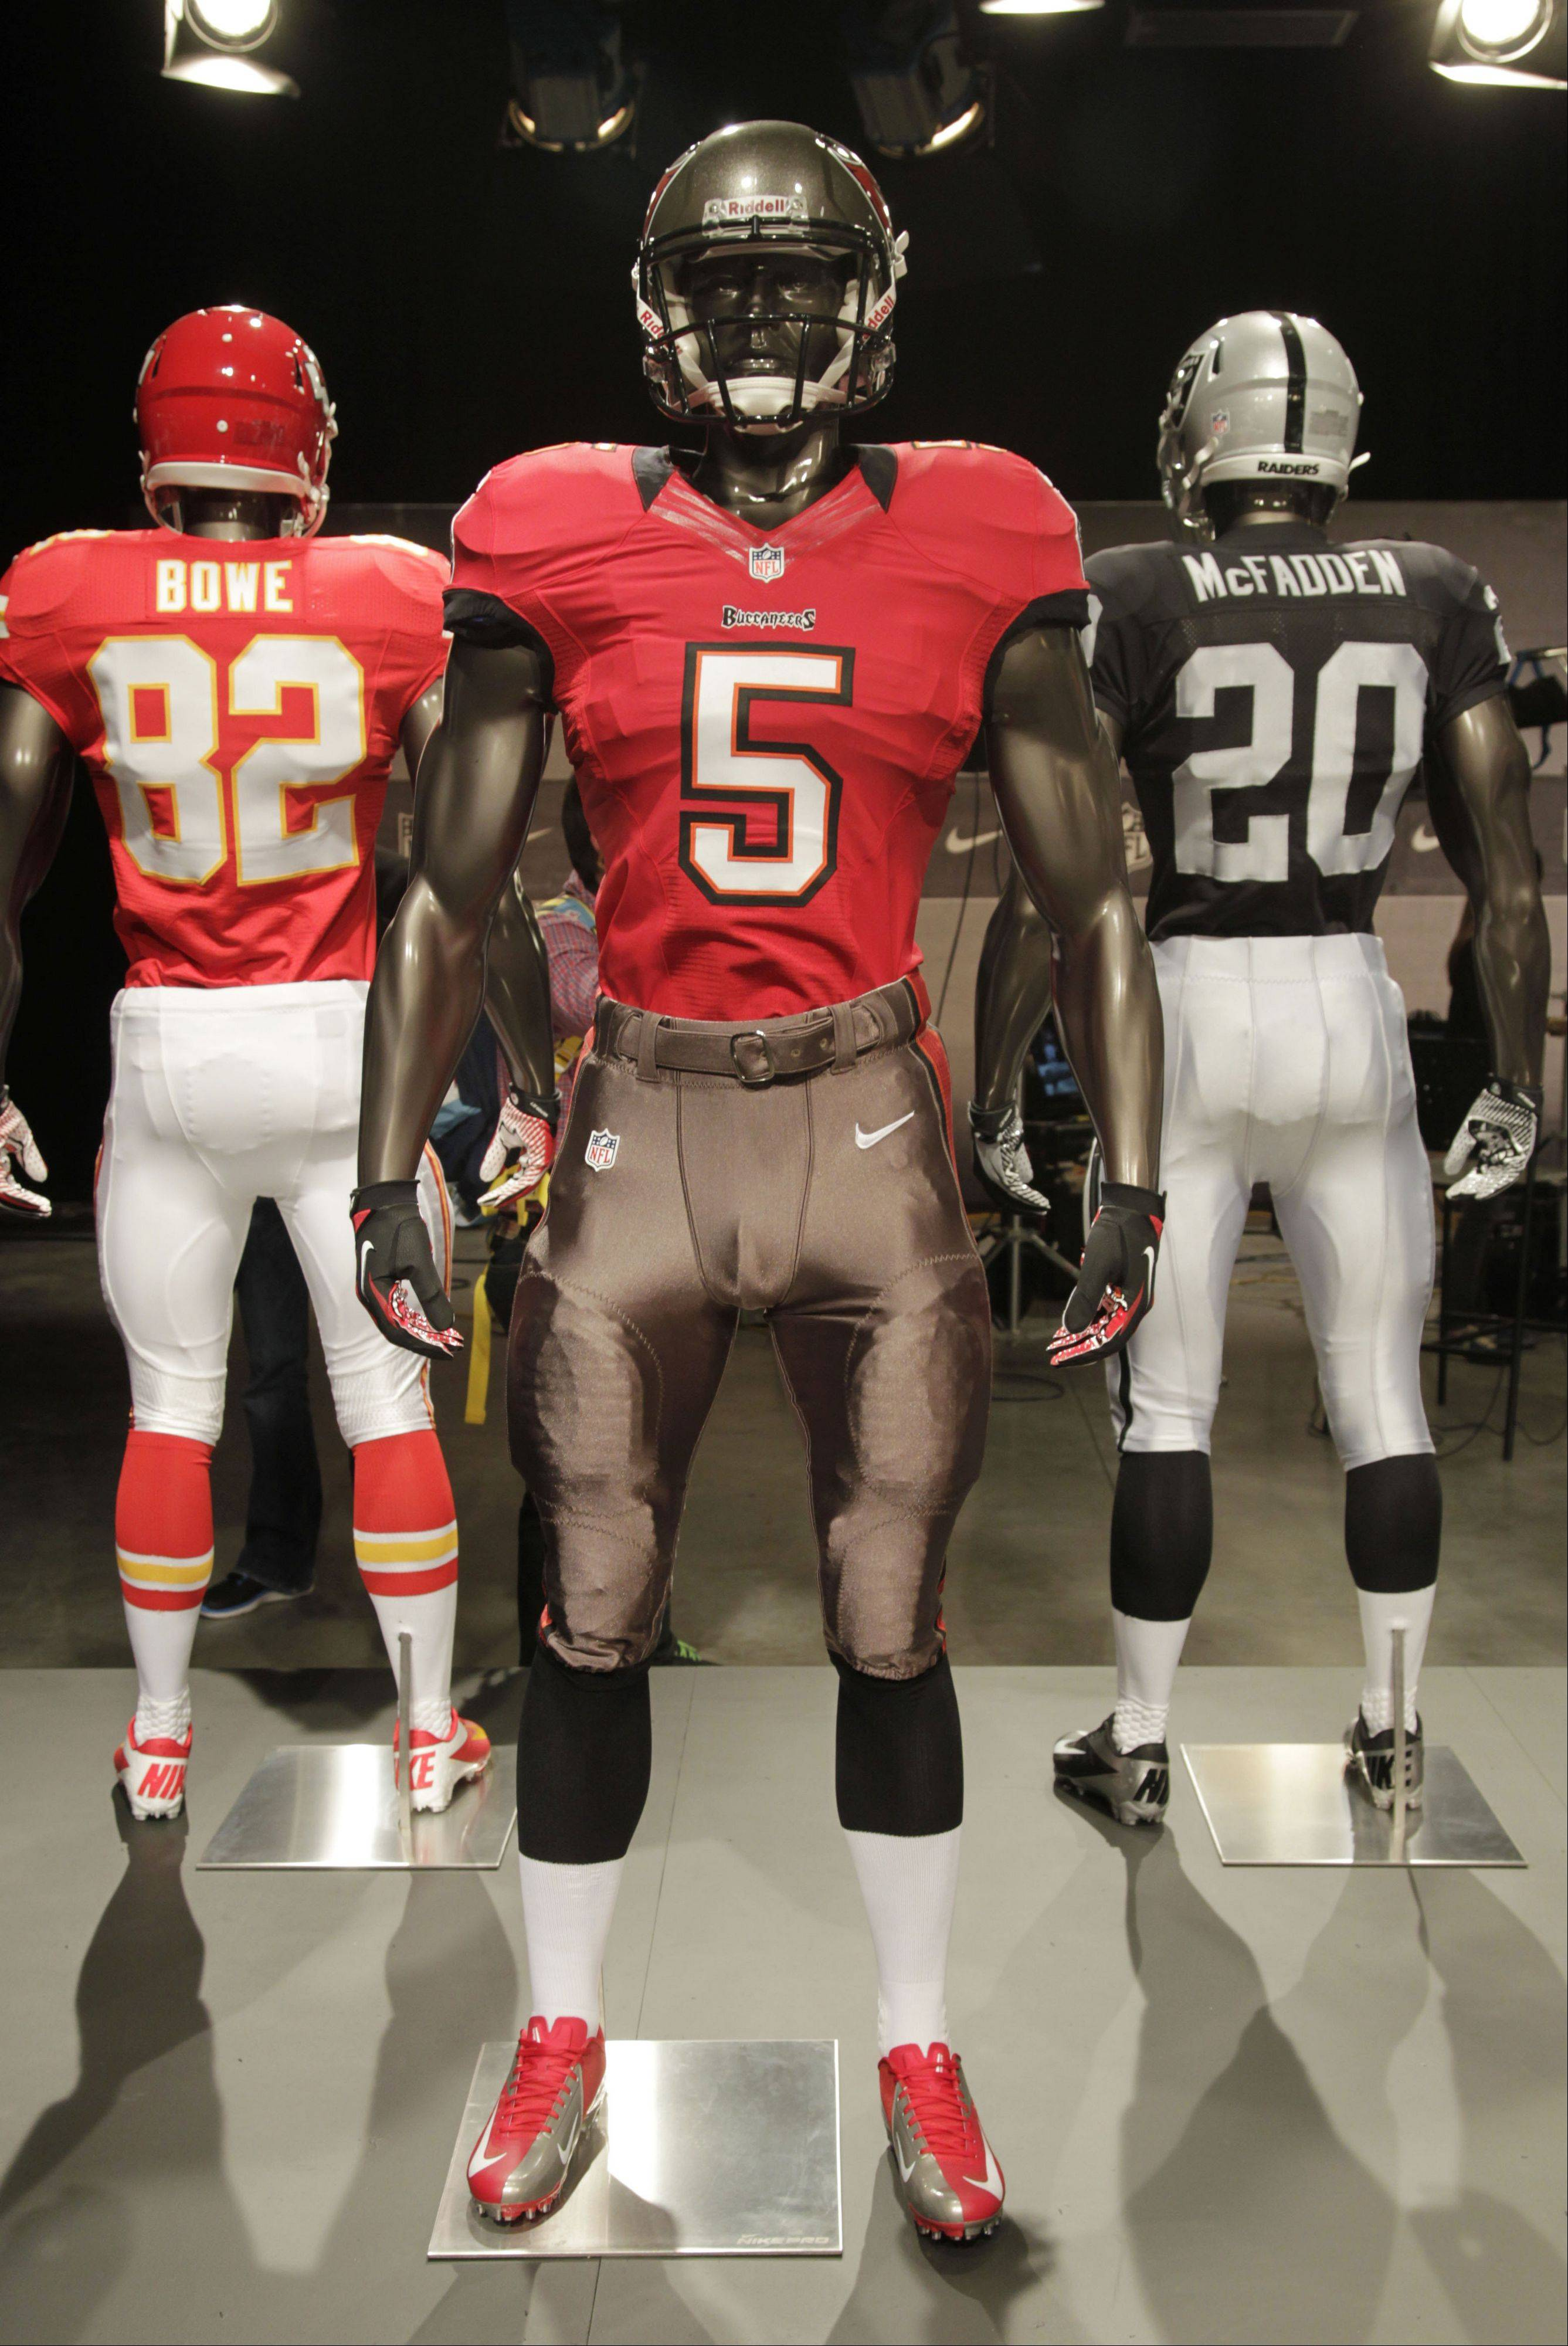 The new Tampa Bay Bucaneers uniform is displayed on a mannequin in New York, Tuesday, April 3, 2012. NFL has unveiled its new sleek uniforms designed by Nike. While most of the new uniforms are not very different visually, they all are made with new technology that make them lighter, dryer and more comfortable.